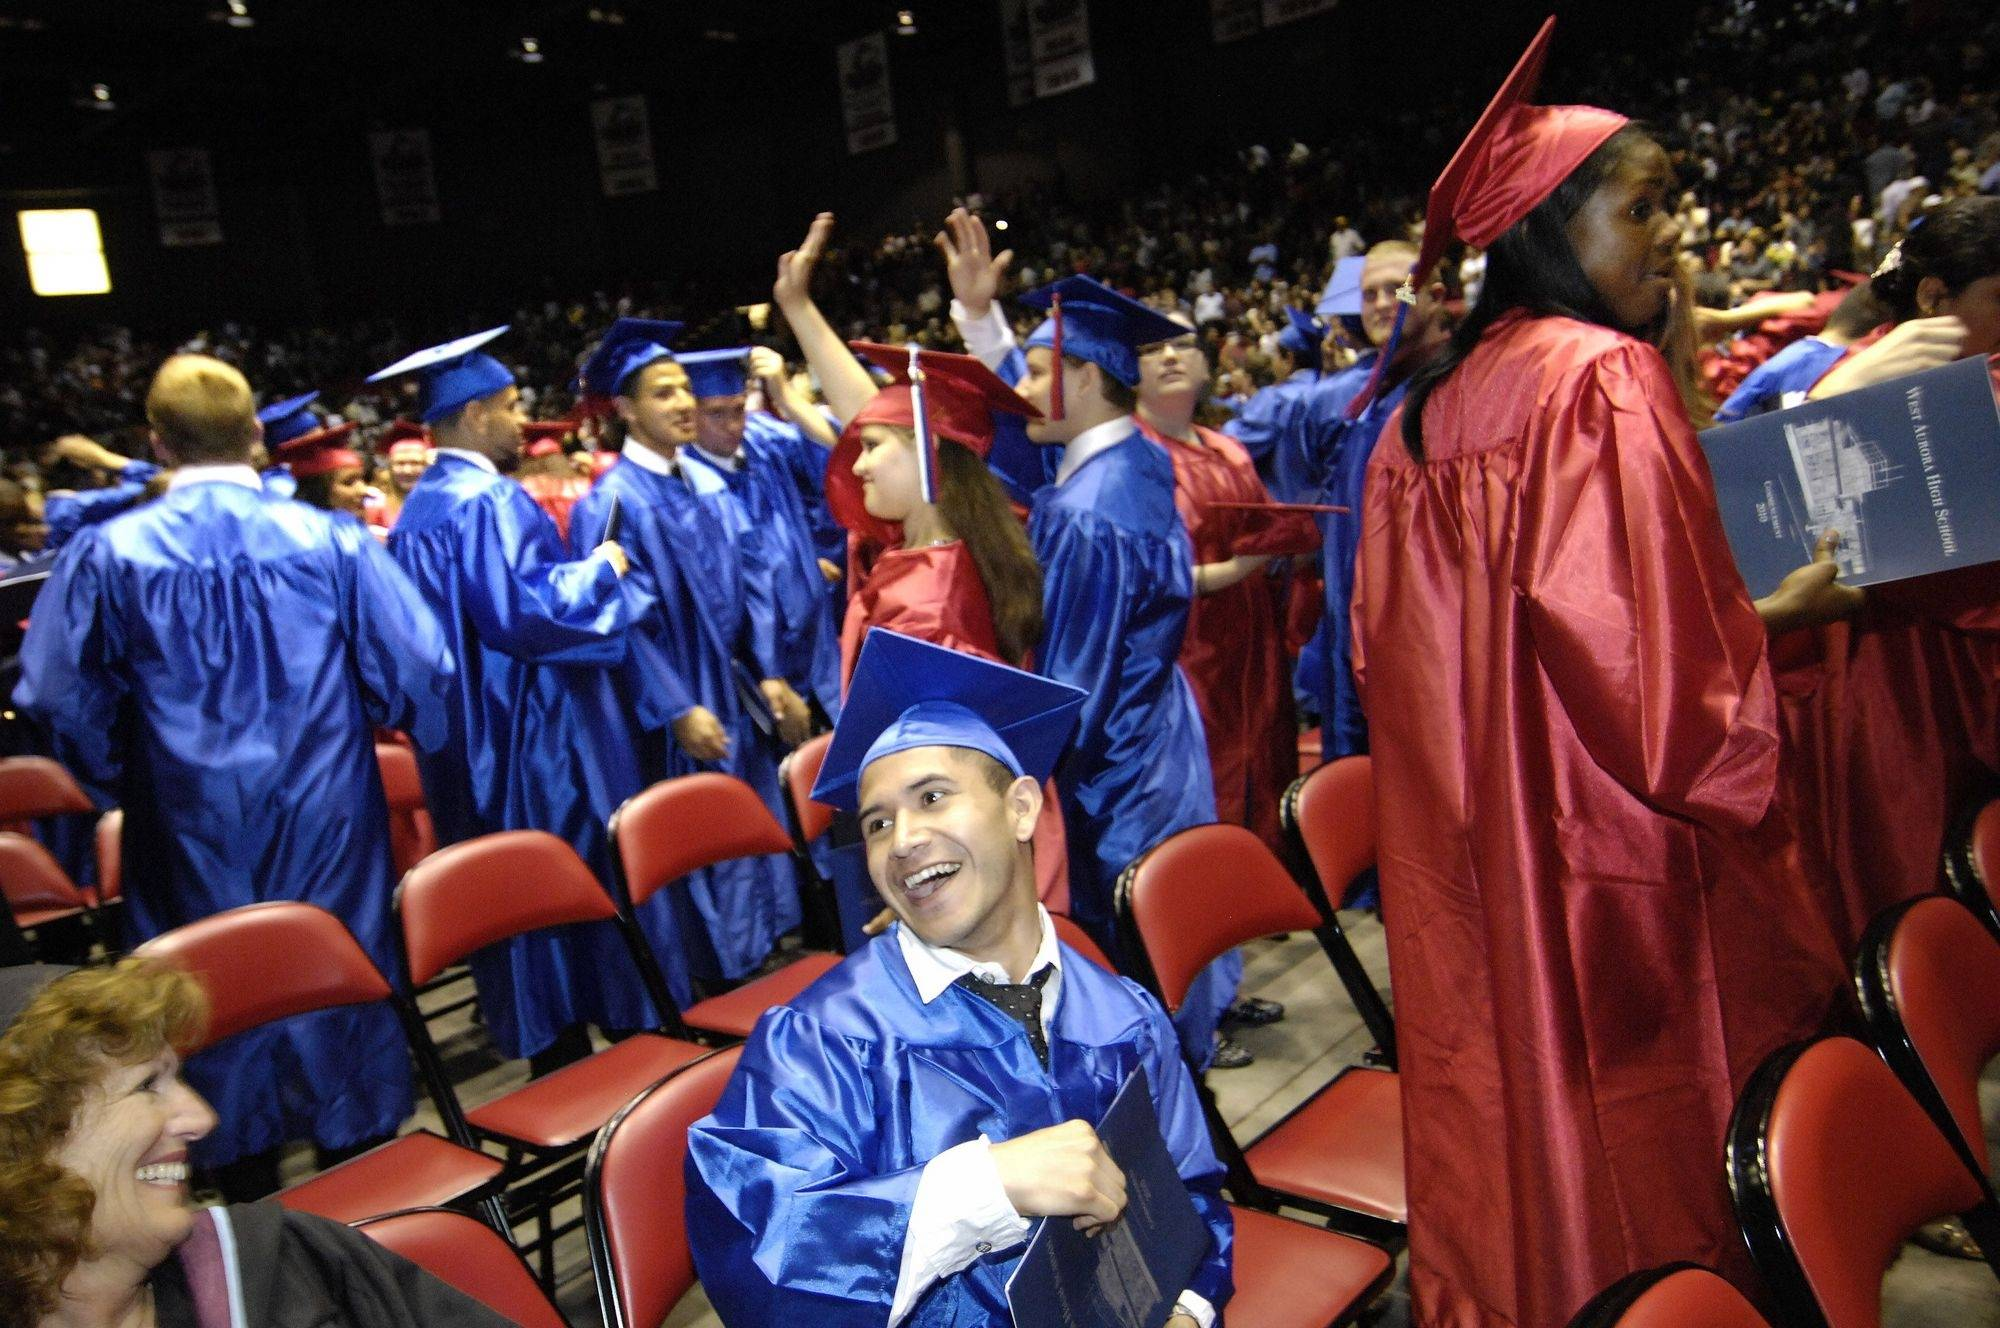 Jorge Garcia laughs with classmates during commencement exercises for West Aurora High School on Monday night at the Convocation Center in Dekalb.